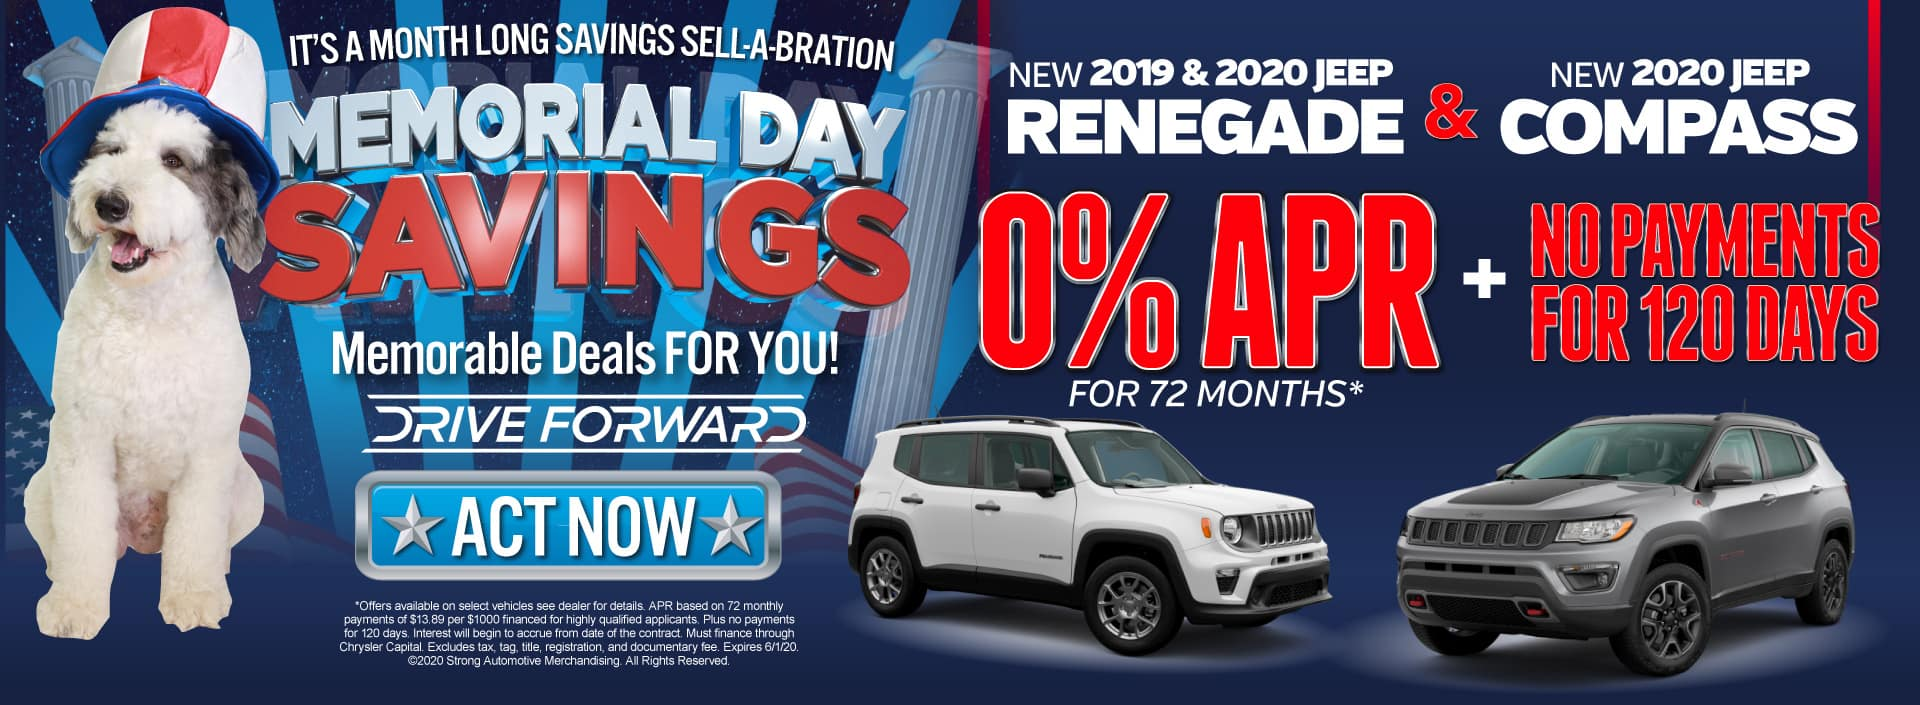 New 2019 and 2020 Jeep Renegade and 2020 Jeep Compass - Now with 0% APR for 84 months and No Payments for 120 Days